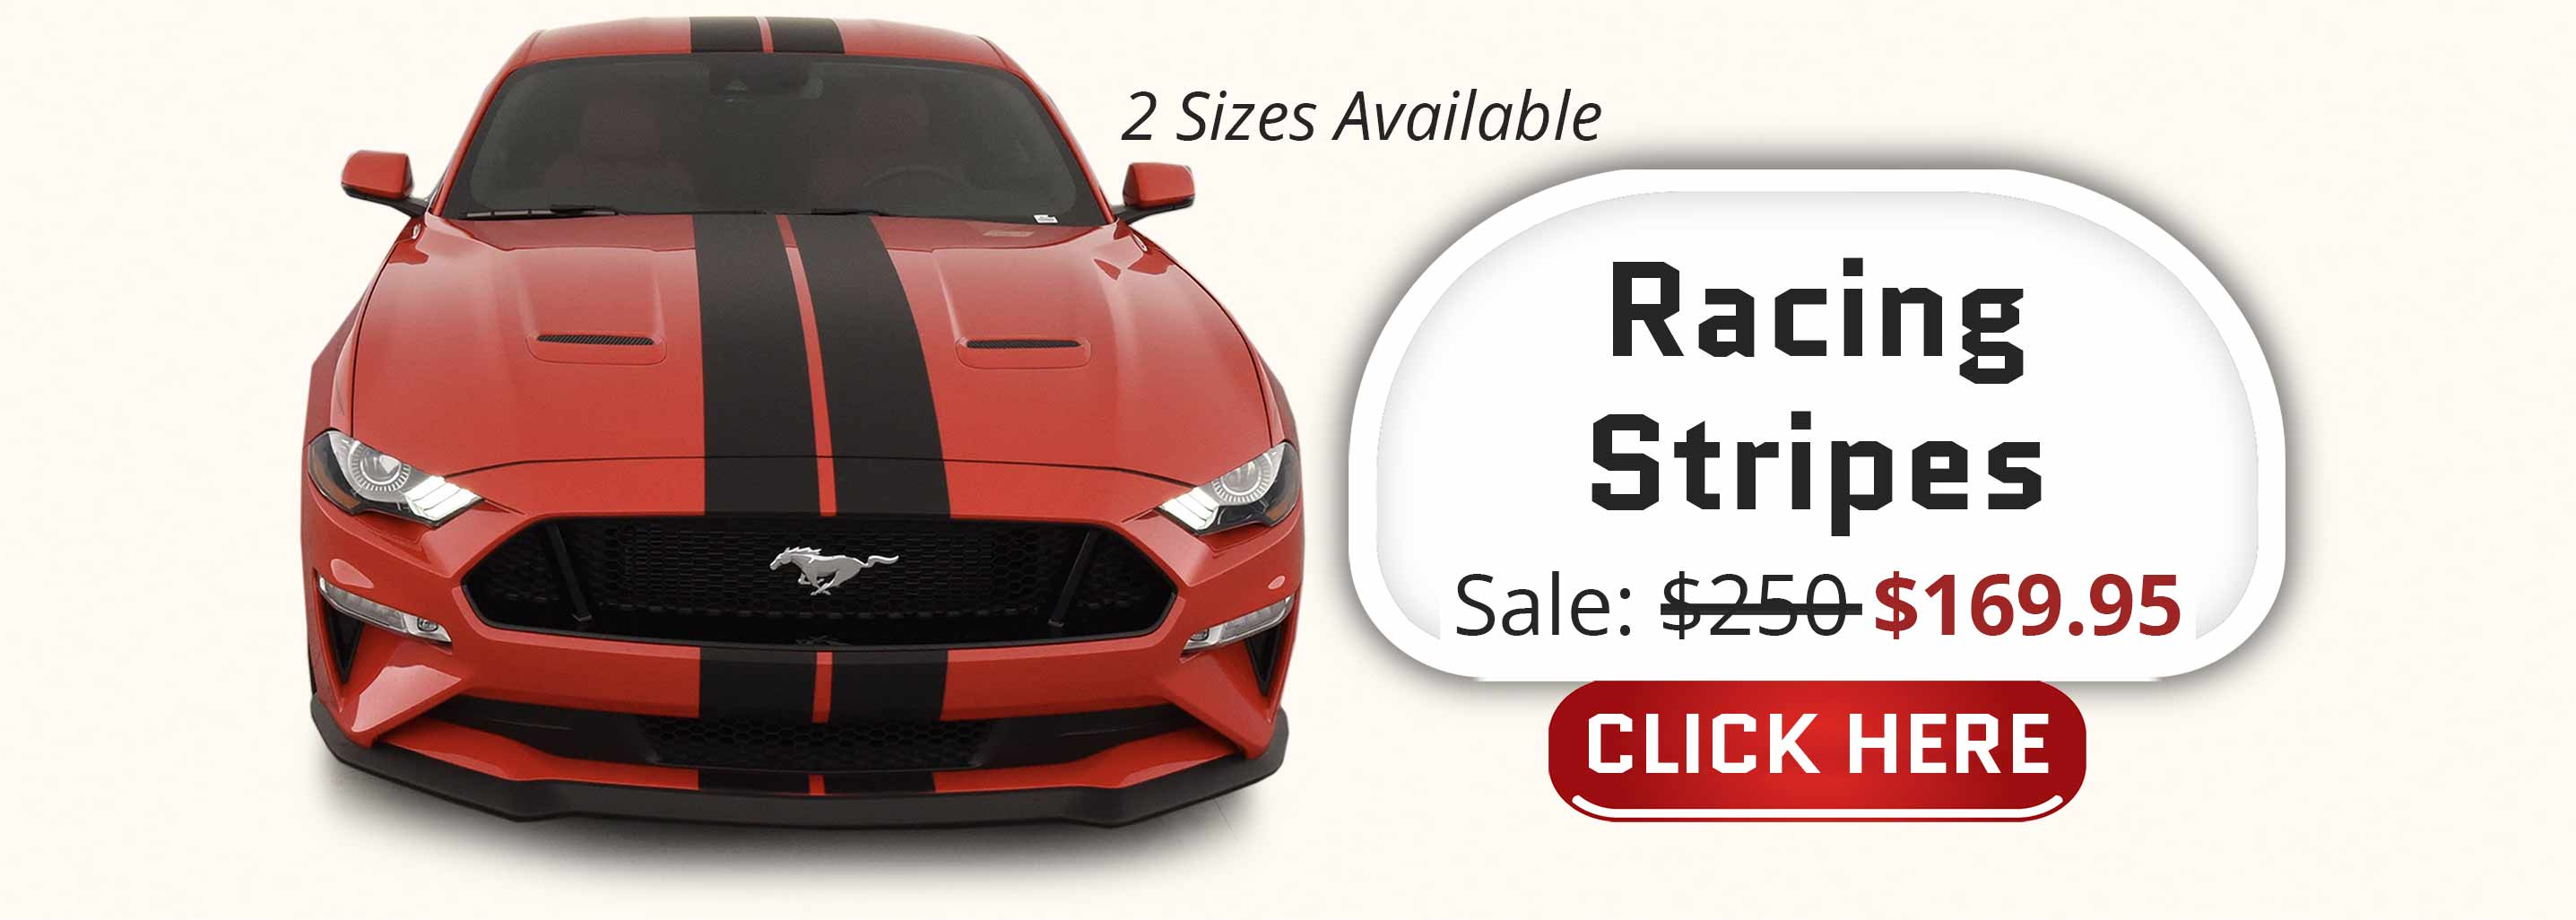 thin dual rally racing stripes twin stripe kit pre-cut decals full stripes on a red Ford Mustang GT